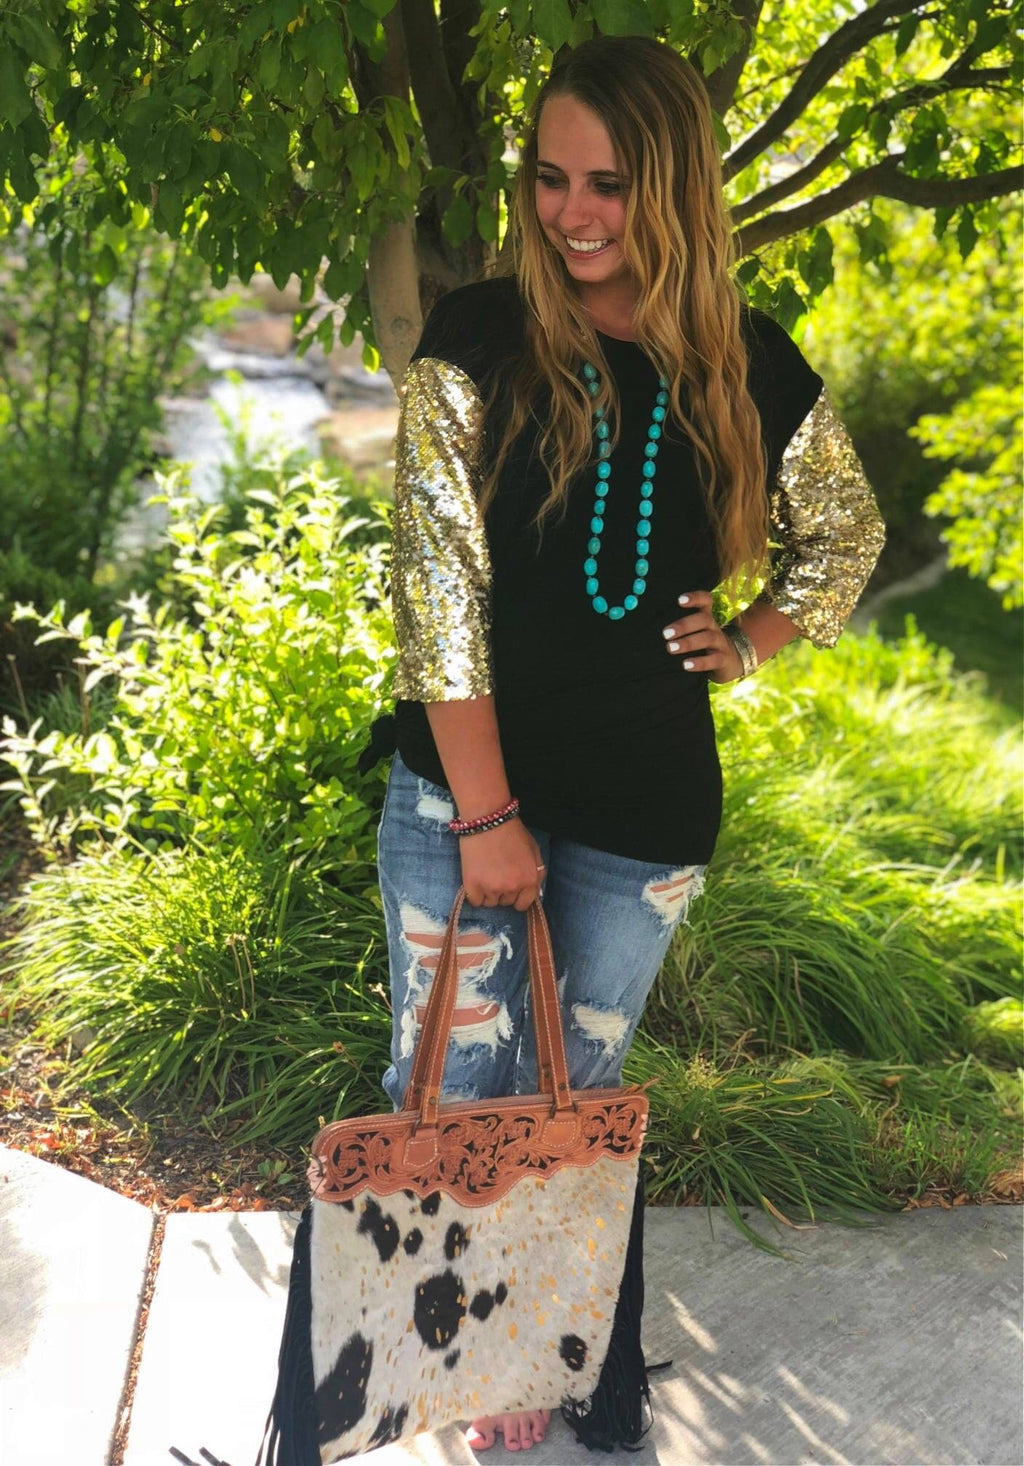 The Black Tie Gold Sequin Top